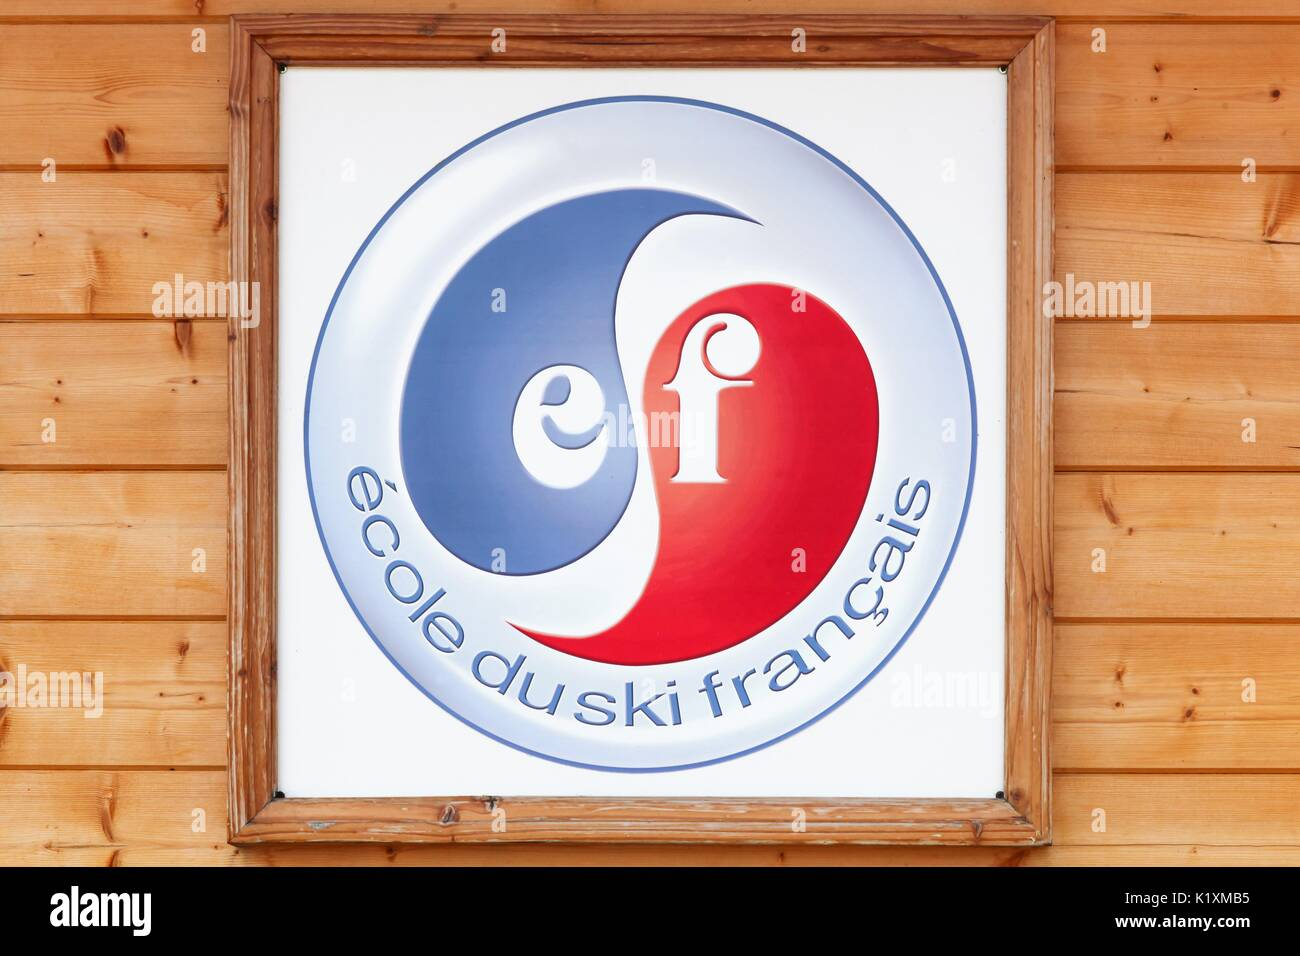 Meaudre, France - June 23 2017: French ski school logo on a wall called ecole de ski francais or ESF in french. ESF Is a consortium of 250 French ski - Stock Image